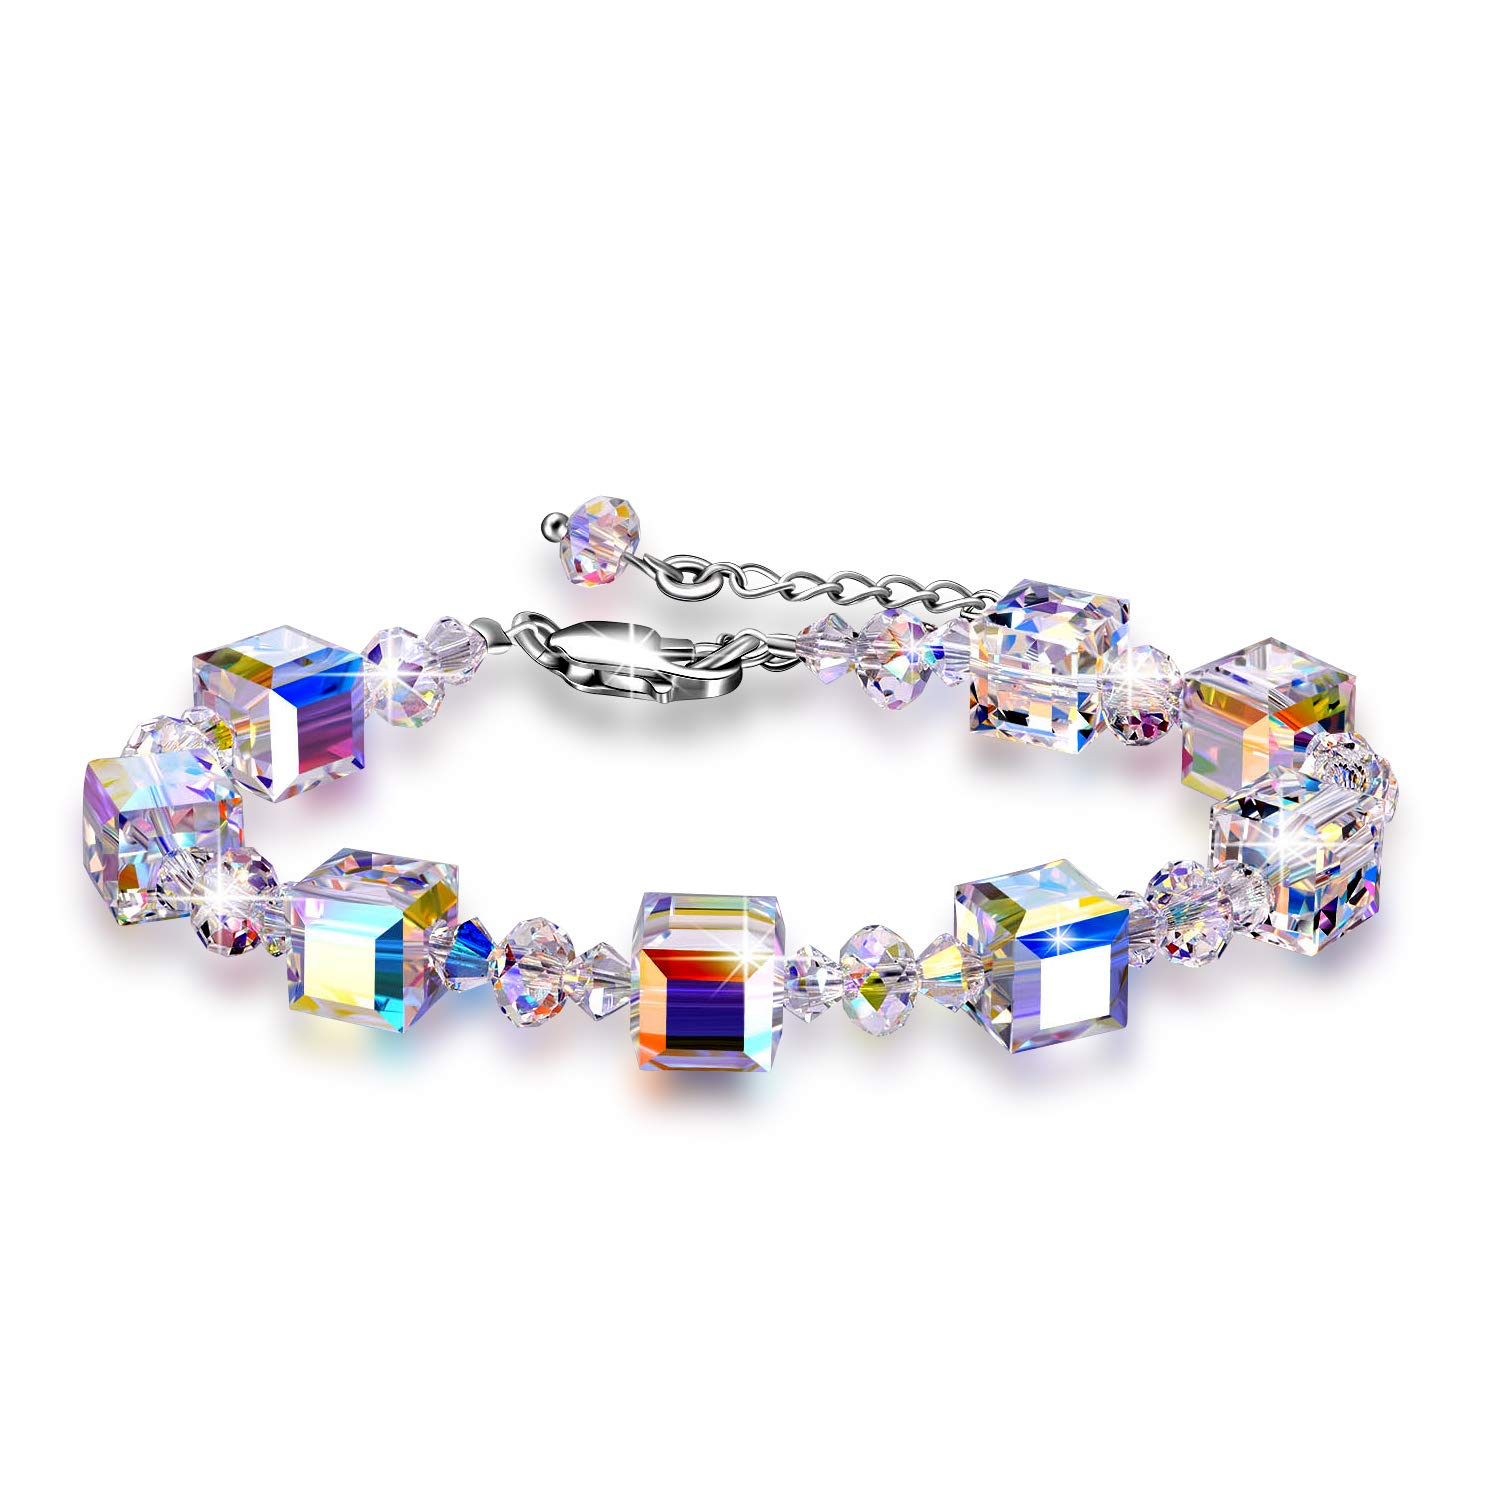 AOBOCO Adjustable Bracelets for Women Cube Romance Heart Bracelet 925 Sterling Silver with Swarovski Crystal Fine Jewelry Gifts for Her